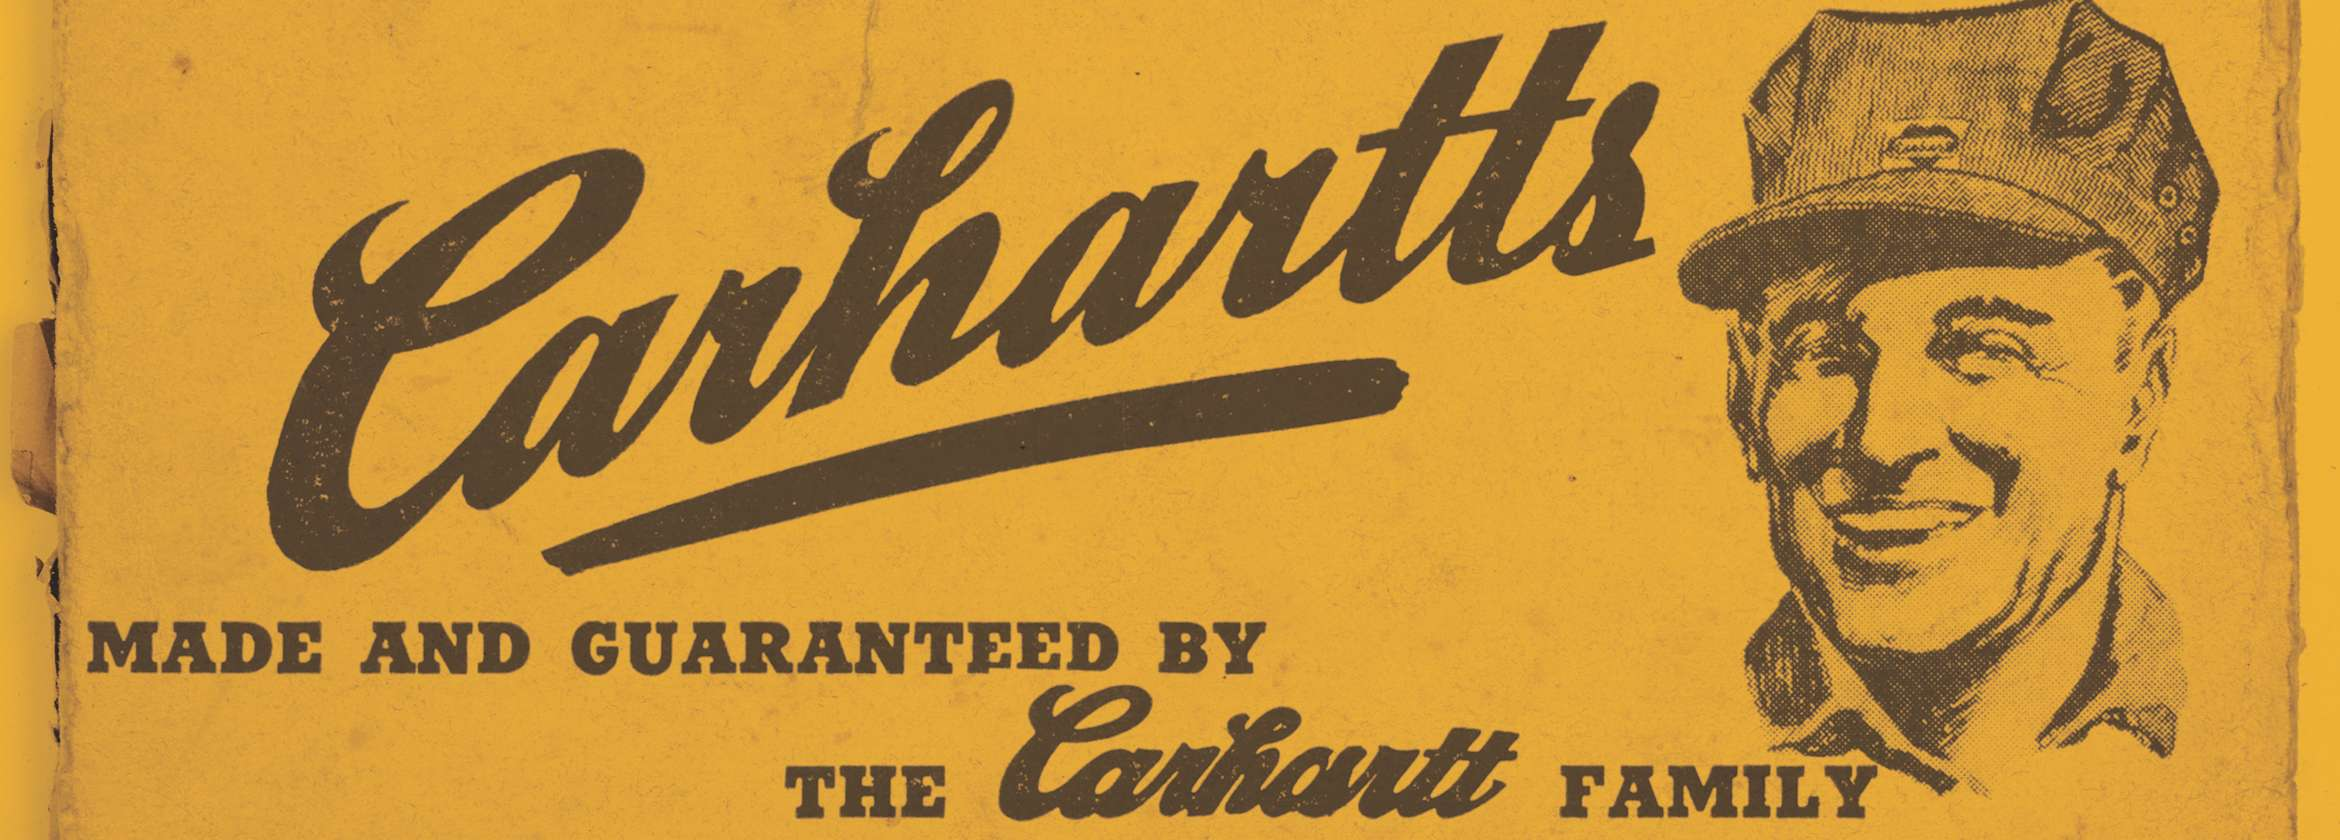 Carhartts. Made and Guaranteed By The Carhartt Family